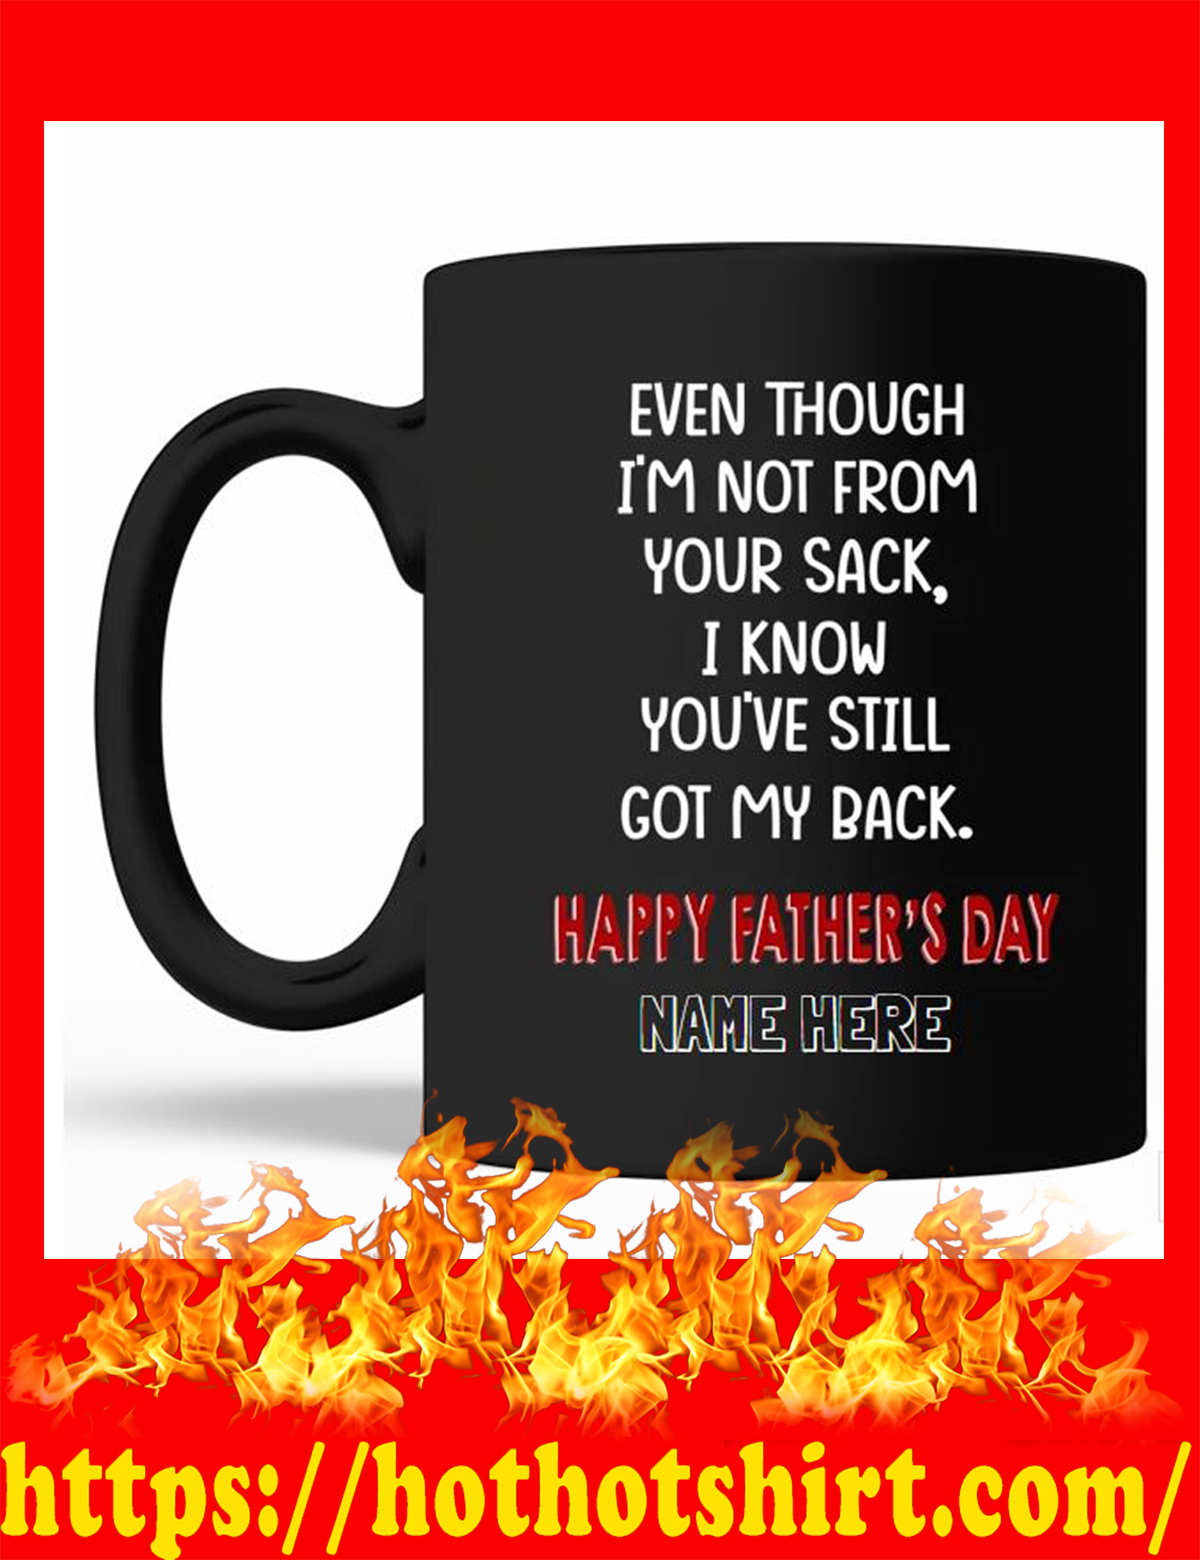 (Black Version) Even though i'm not from your sack i know you've still got my back happy father's day custom mug